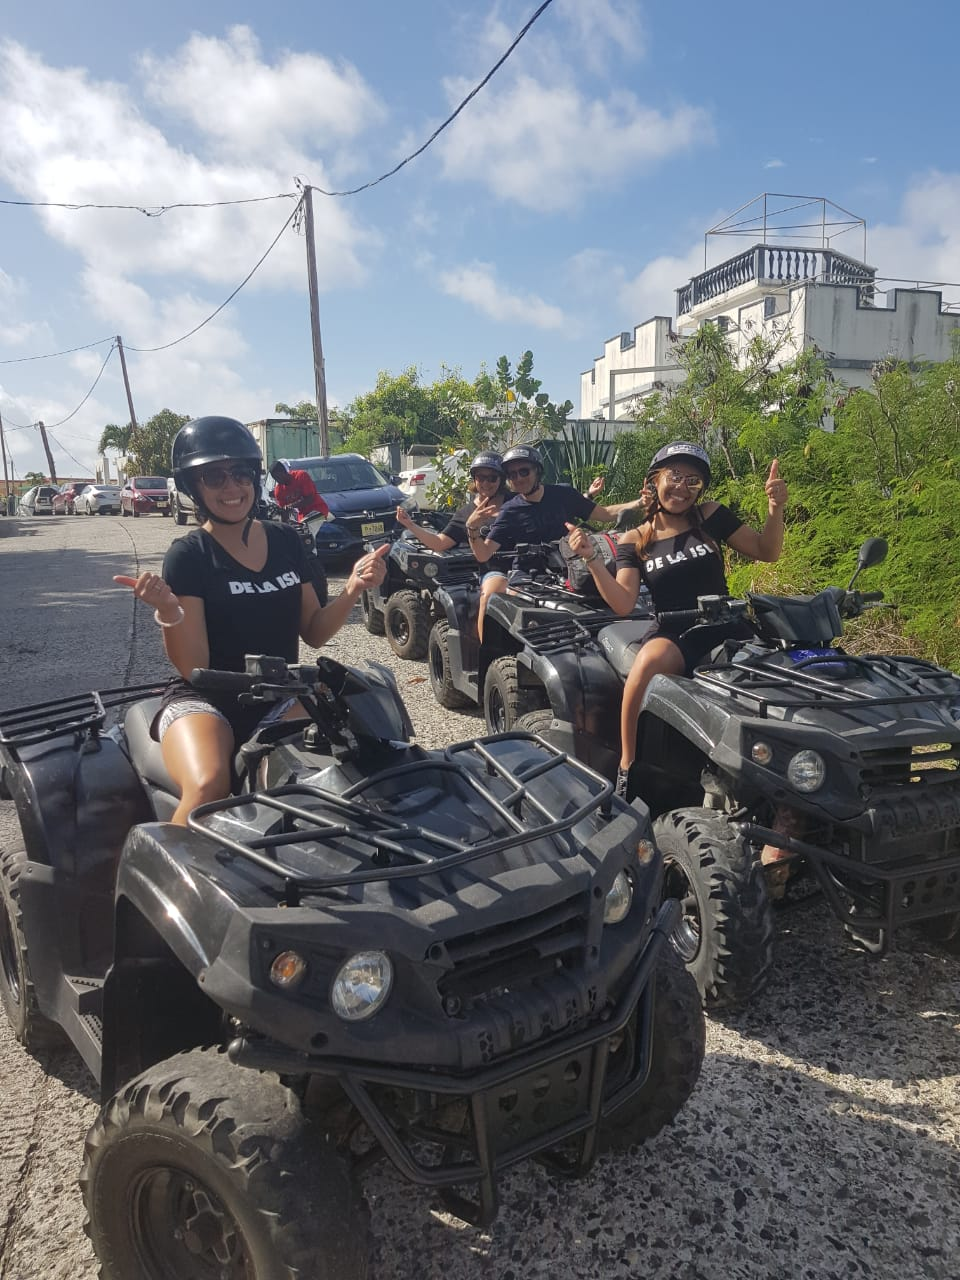 St Maarten ATV Tour Review